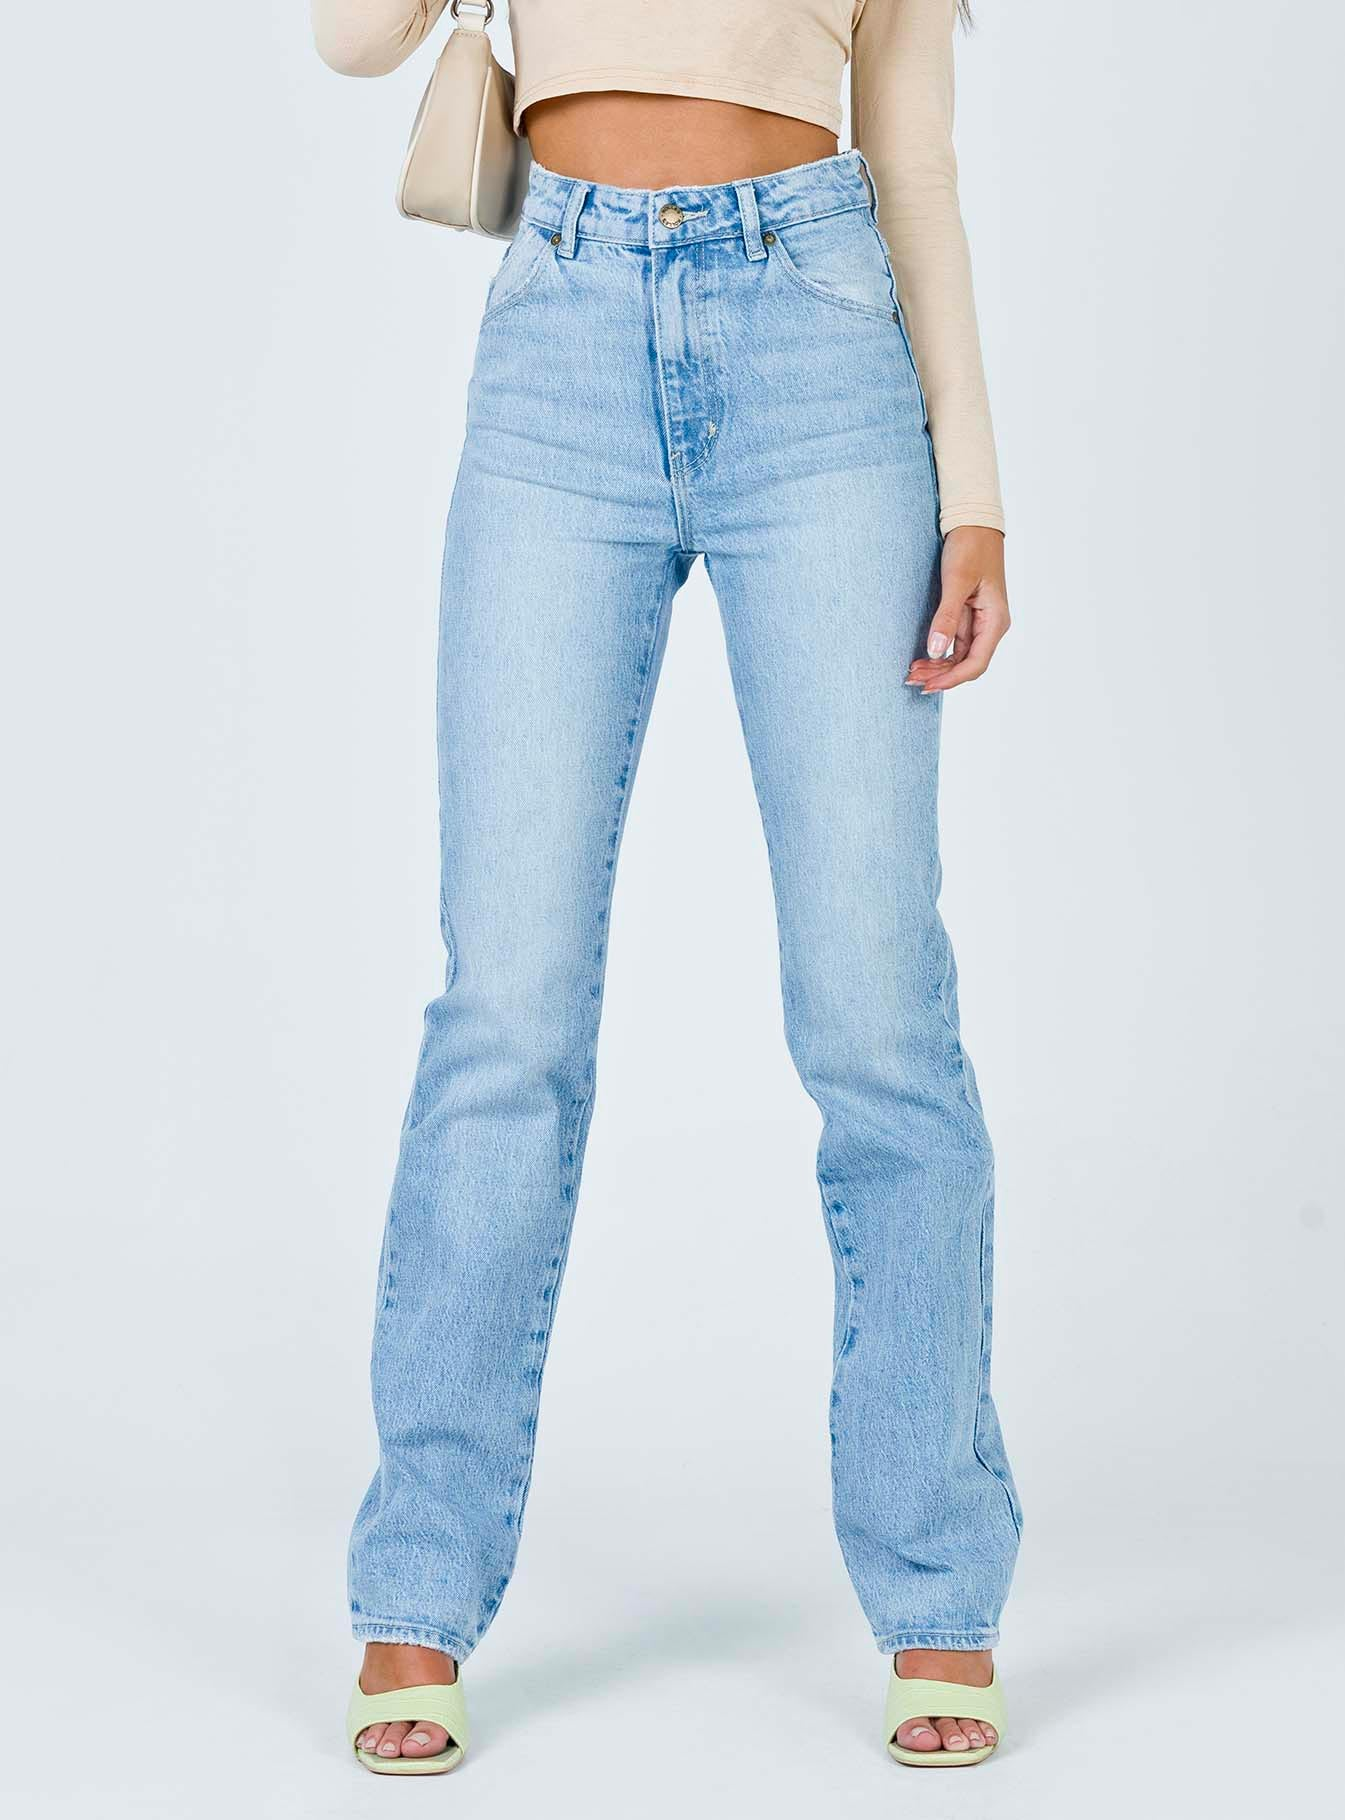 Rolla's Original Straight Long Faded Vintage Jeans